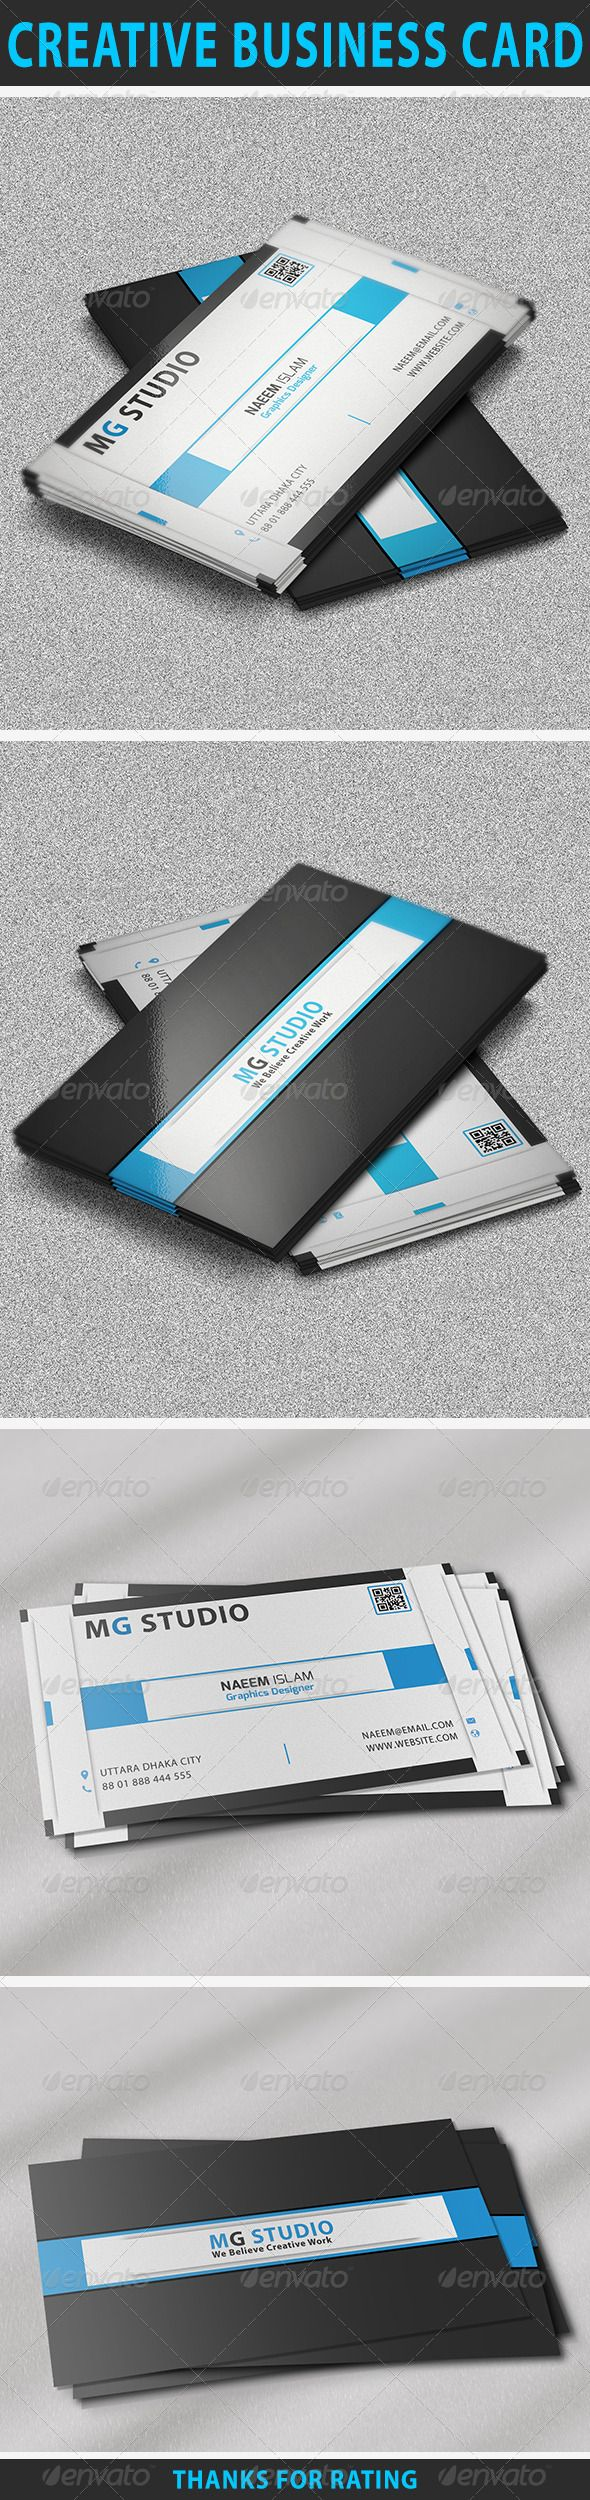 Creative business card pinterest business cards adobe photoshop creative business card features easy to edit optimized for printing 300 dpi cmyk color mode 352 inch dimension 025 bleed reheart Images